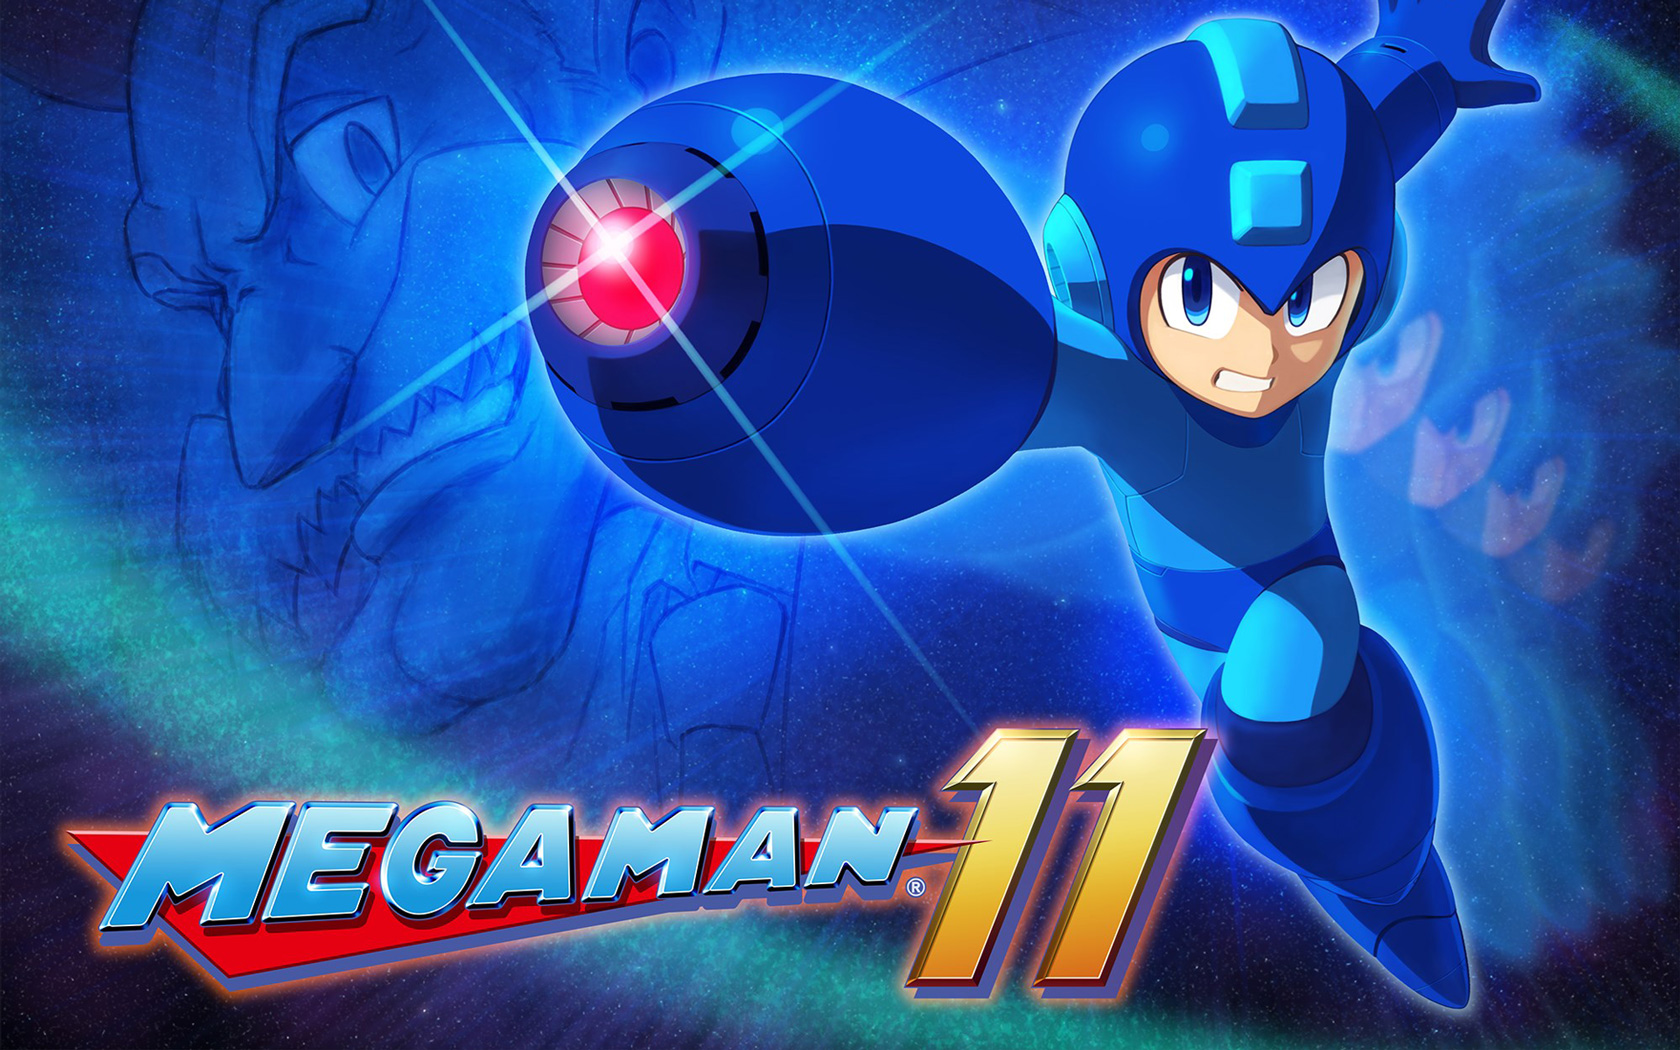 Mega Man 11 Wallpaper in 1680x1050